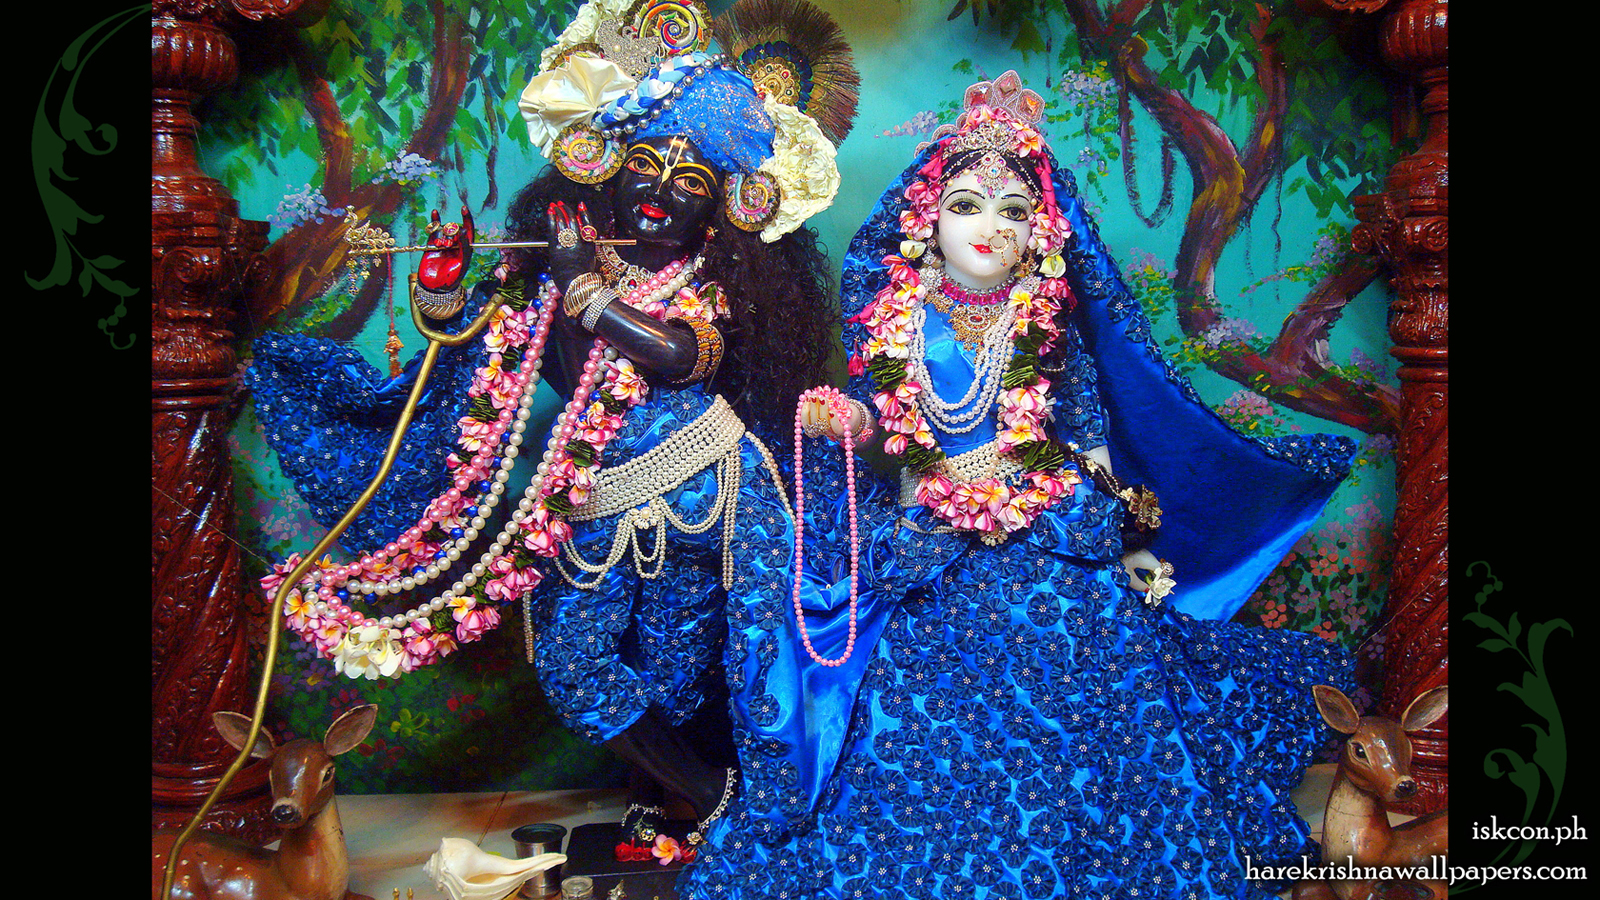 Sri Sri Radha Madhava Wallpaper (007) Size 1600x900 Download